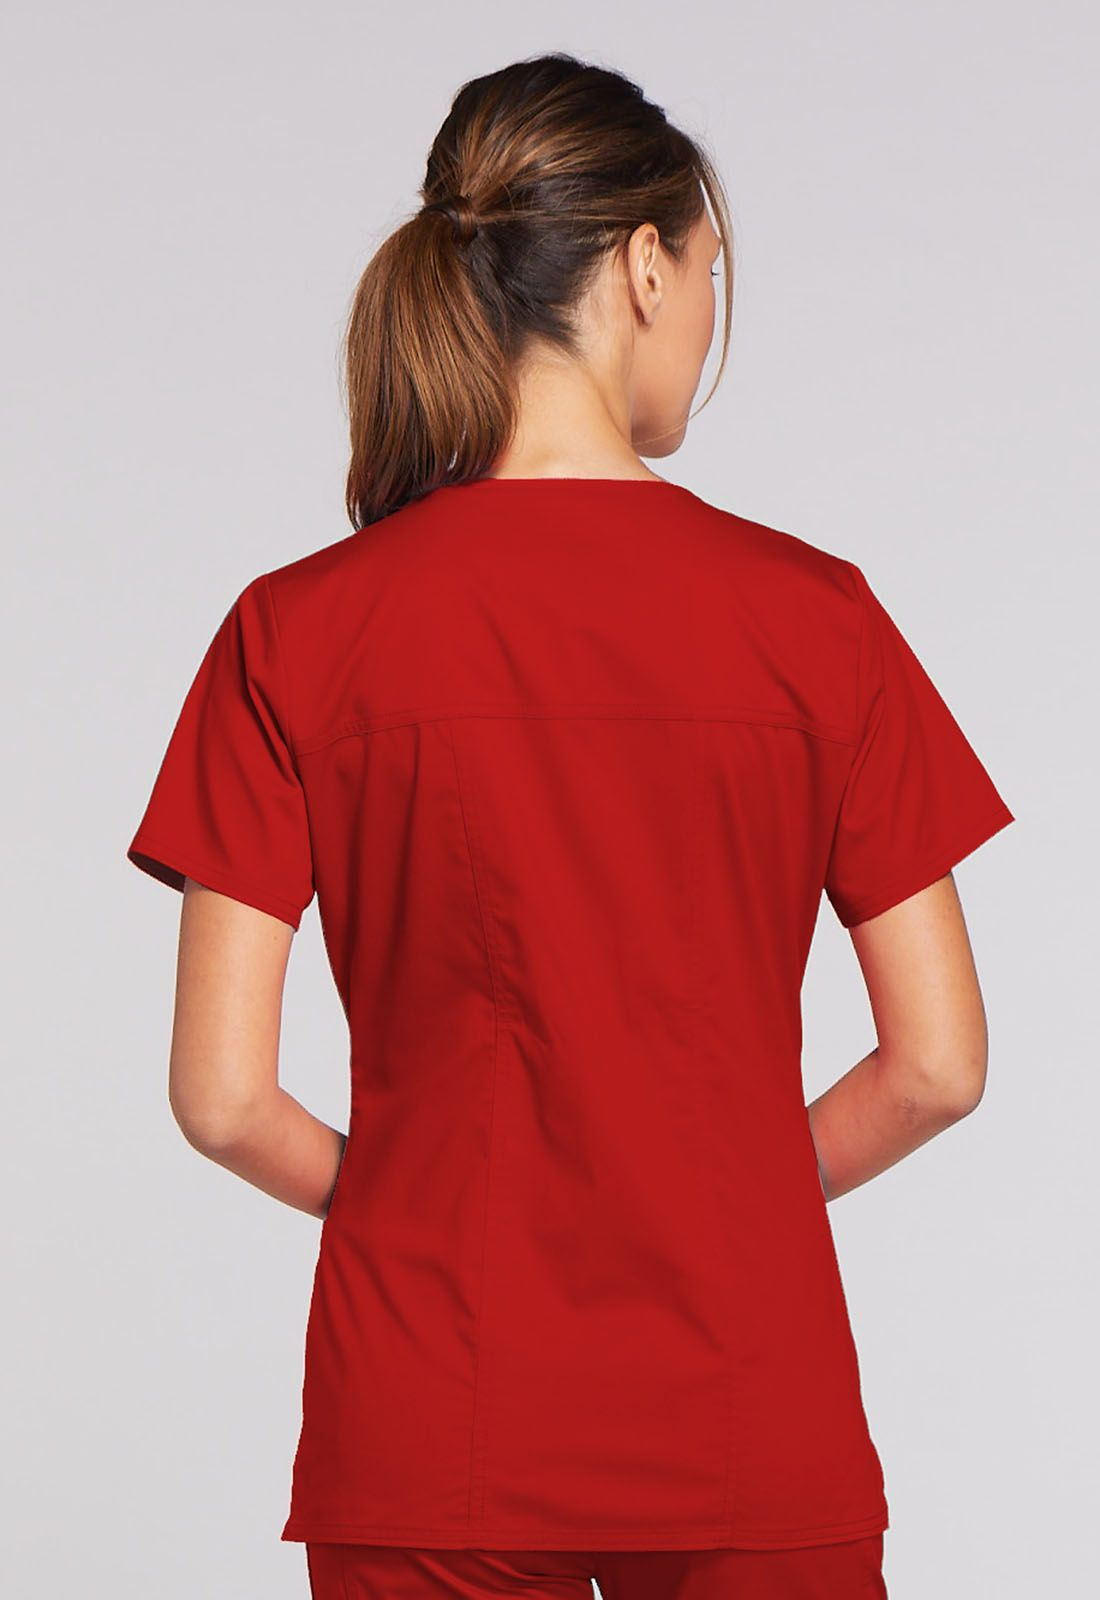 https://medcloth.by/images/stories/virtuemart/product/cherokee-4727-red-4.jpg